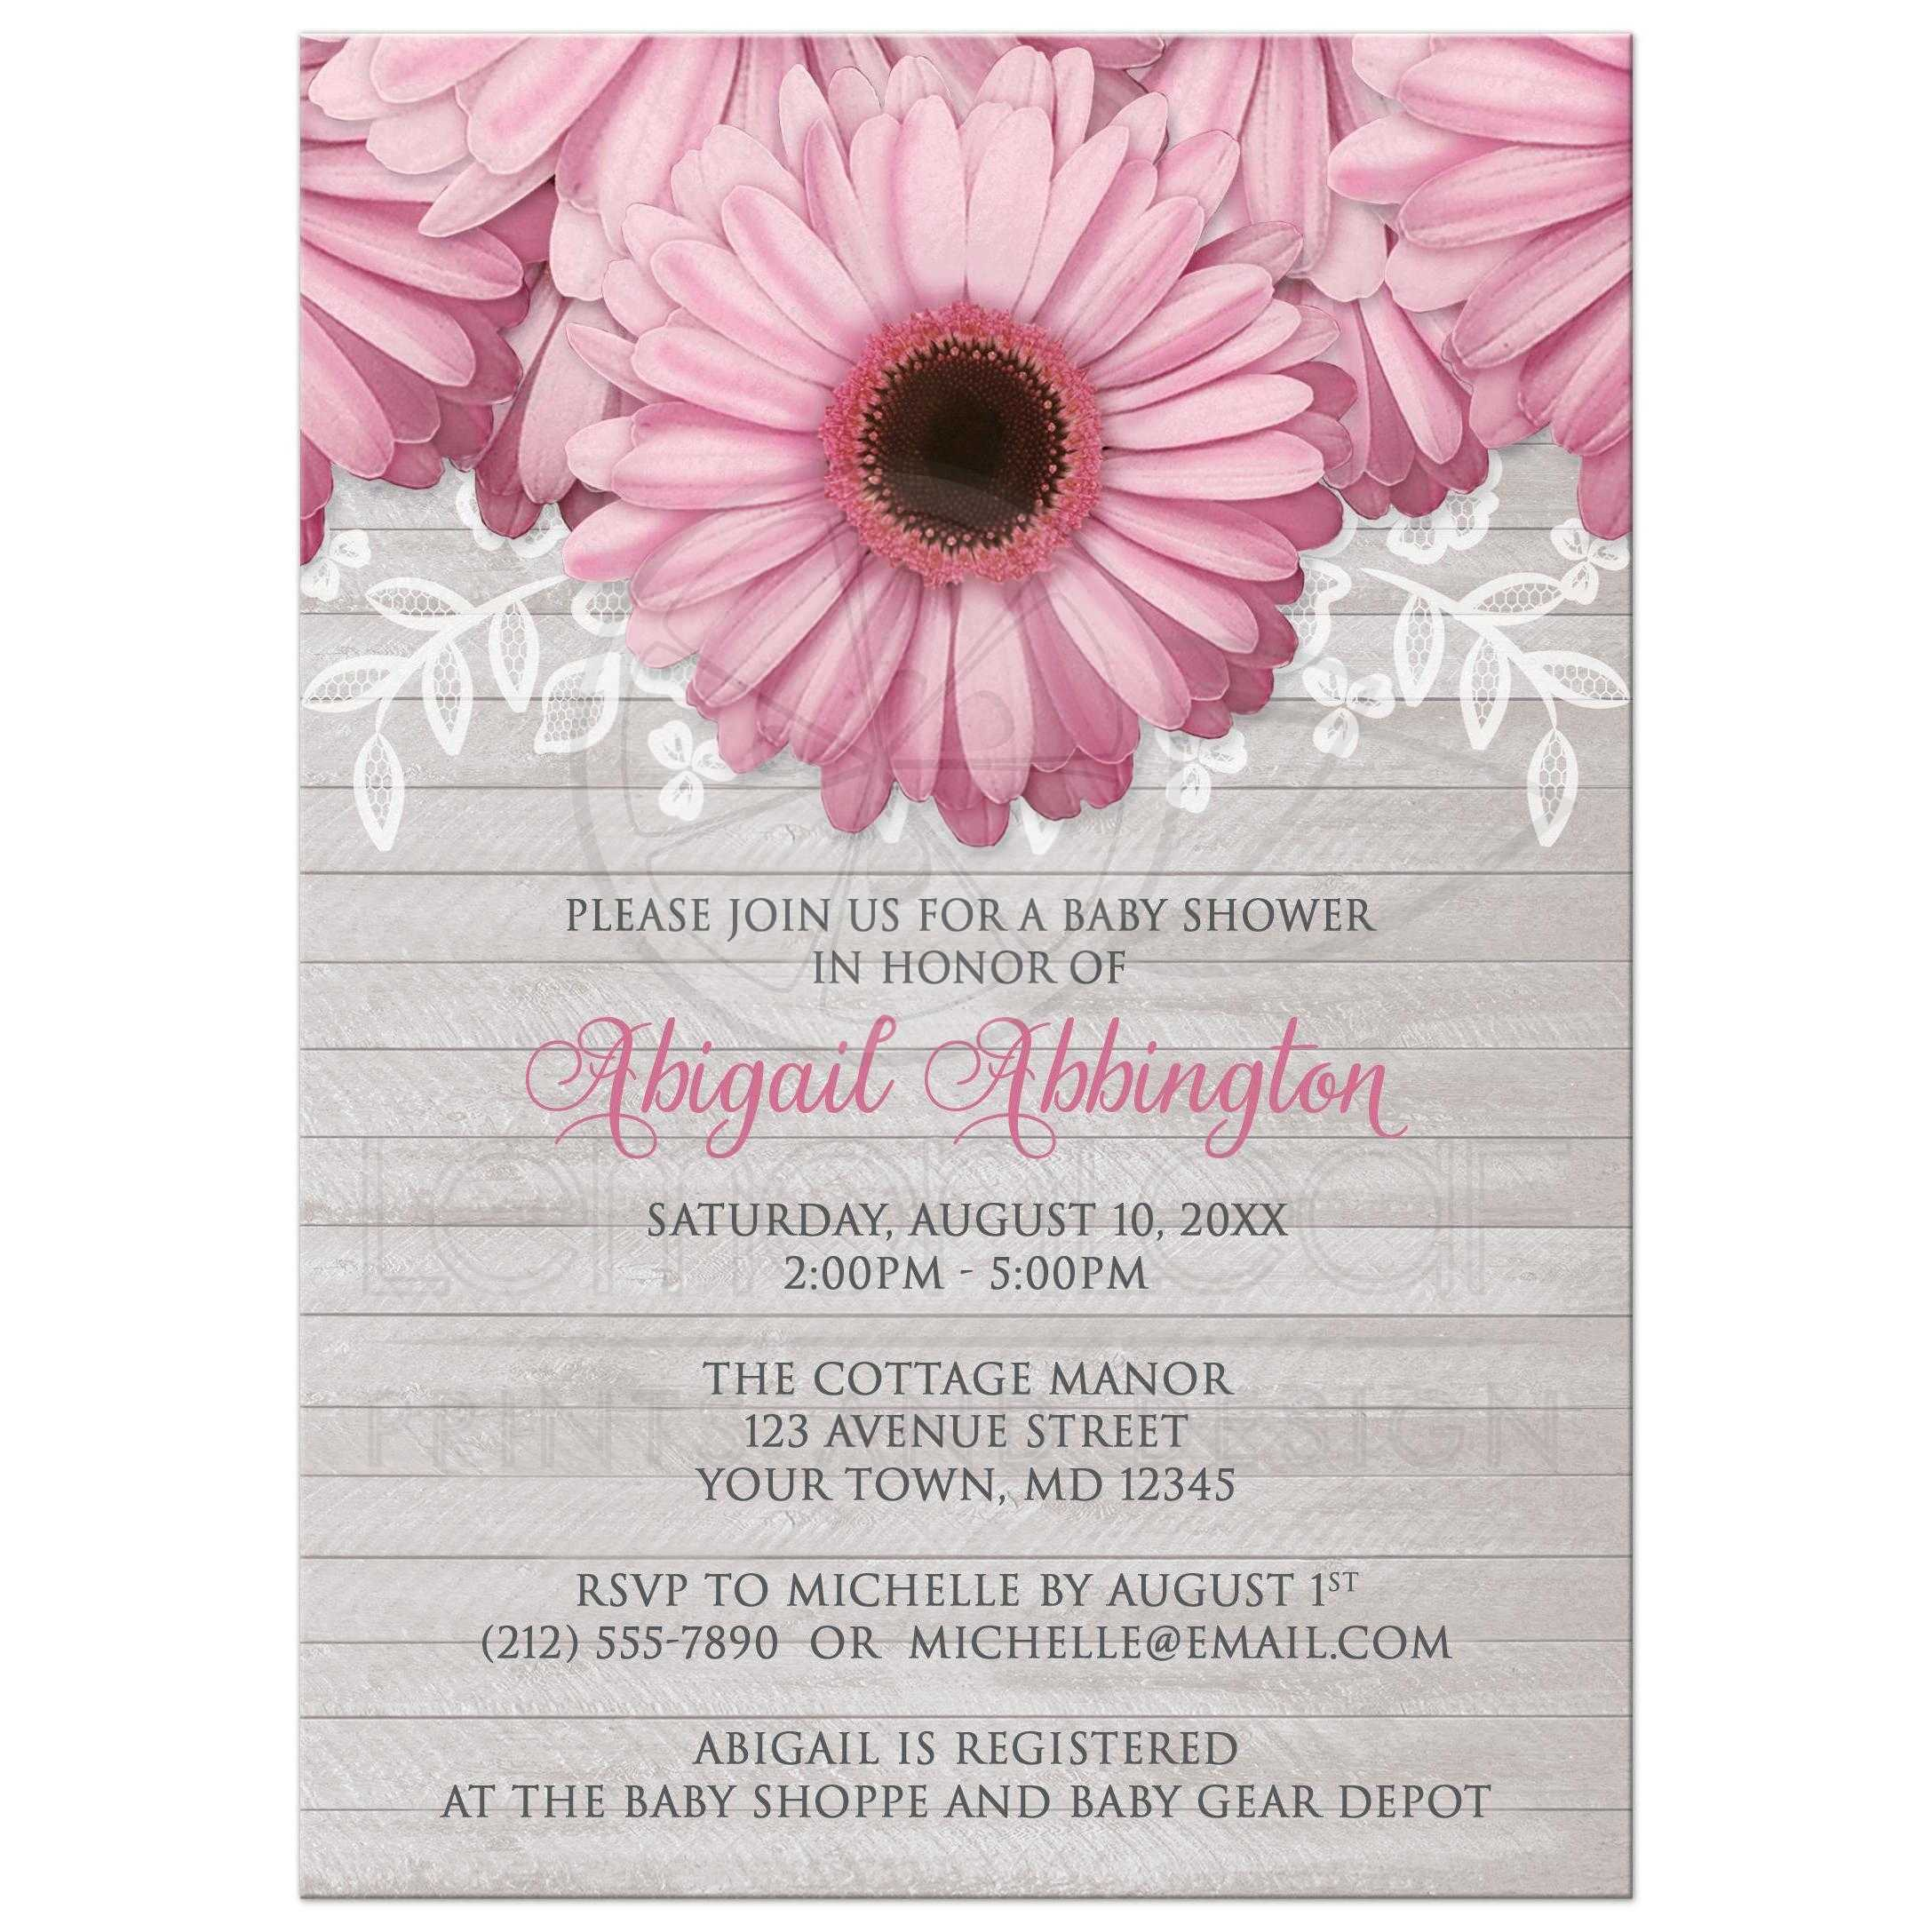 Shower Invitations - Rustic Pink Daisy Wood Gray